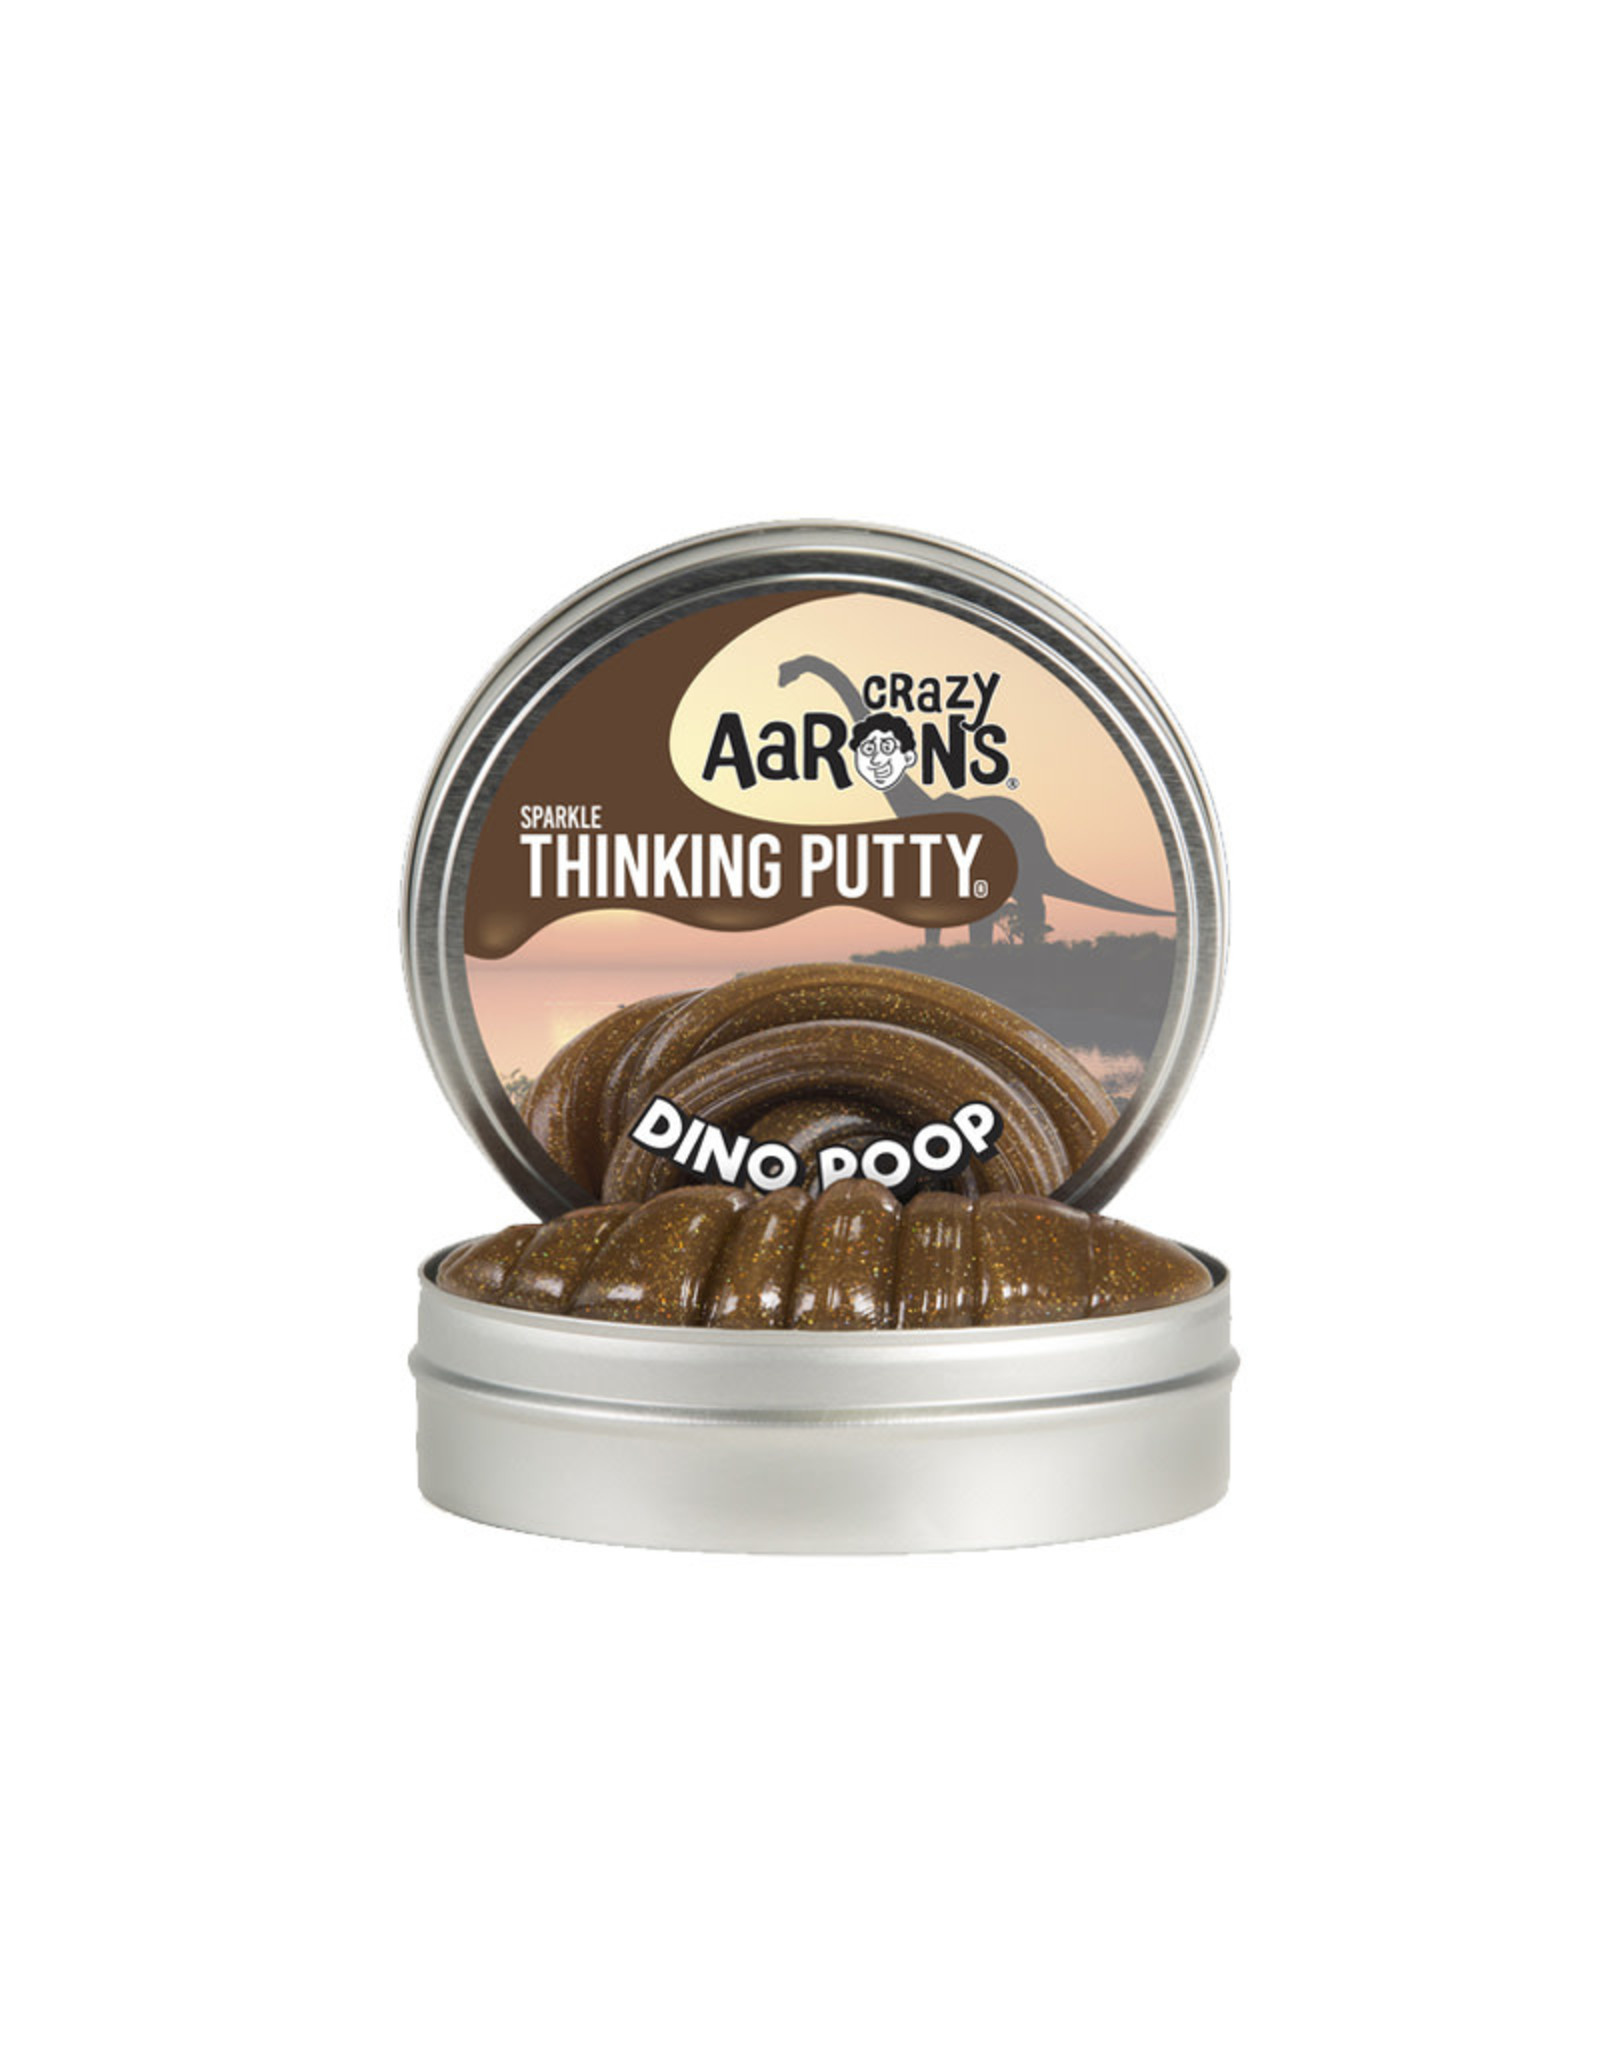 Crazy Aarons Dino Poop ( Thinking Putty )